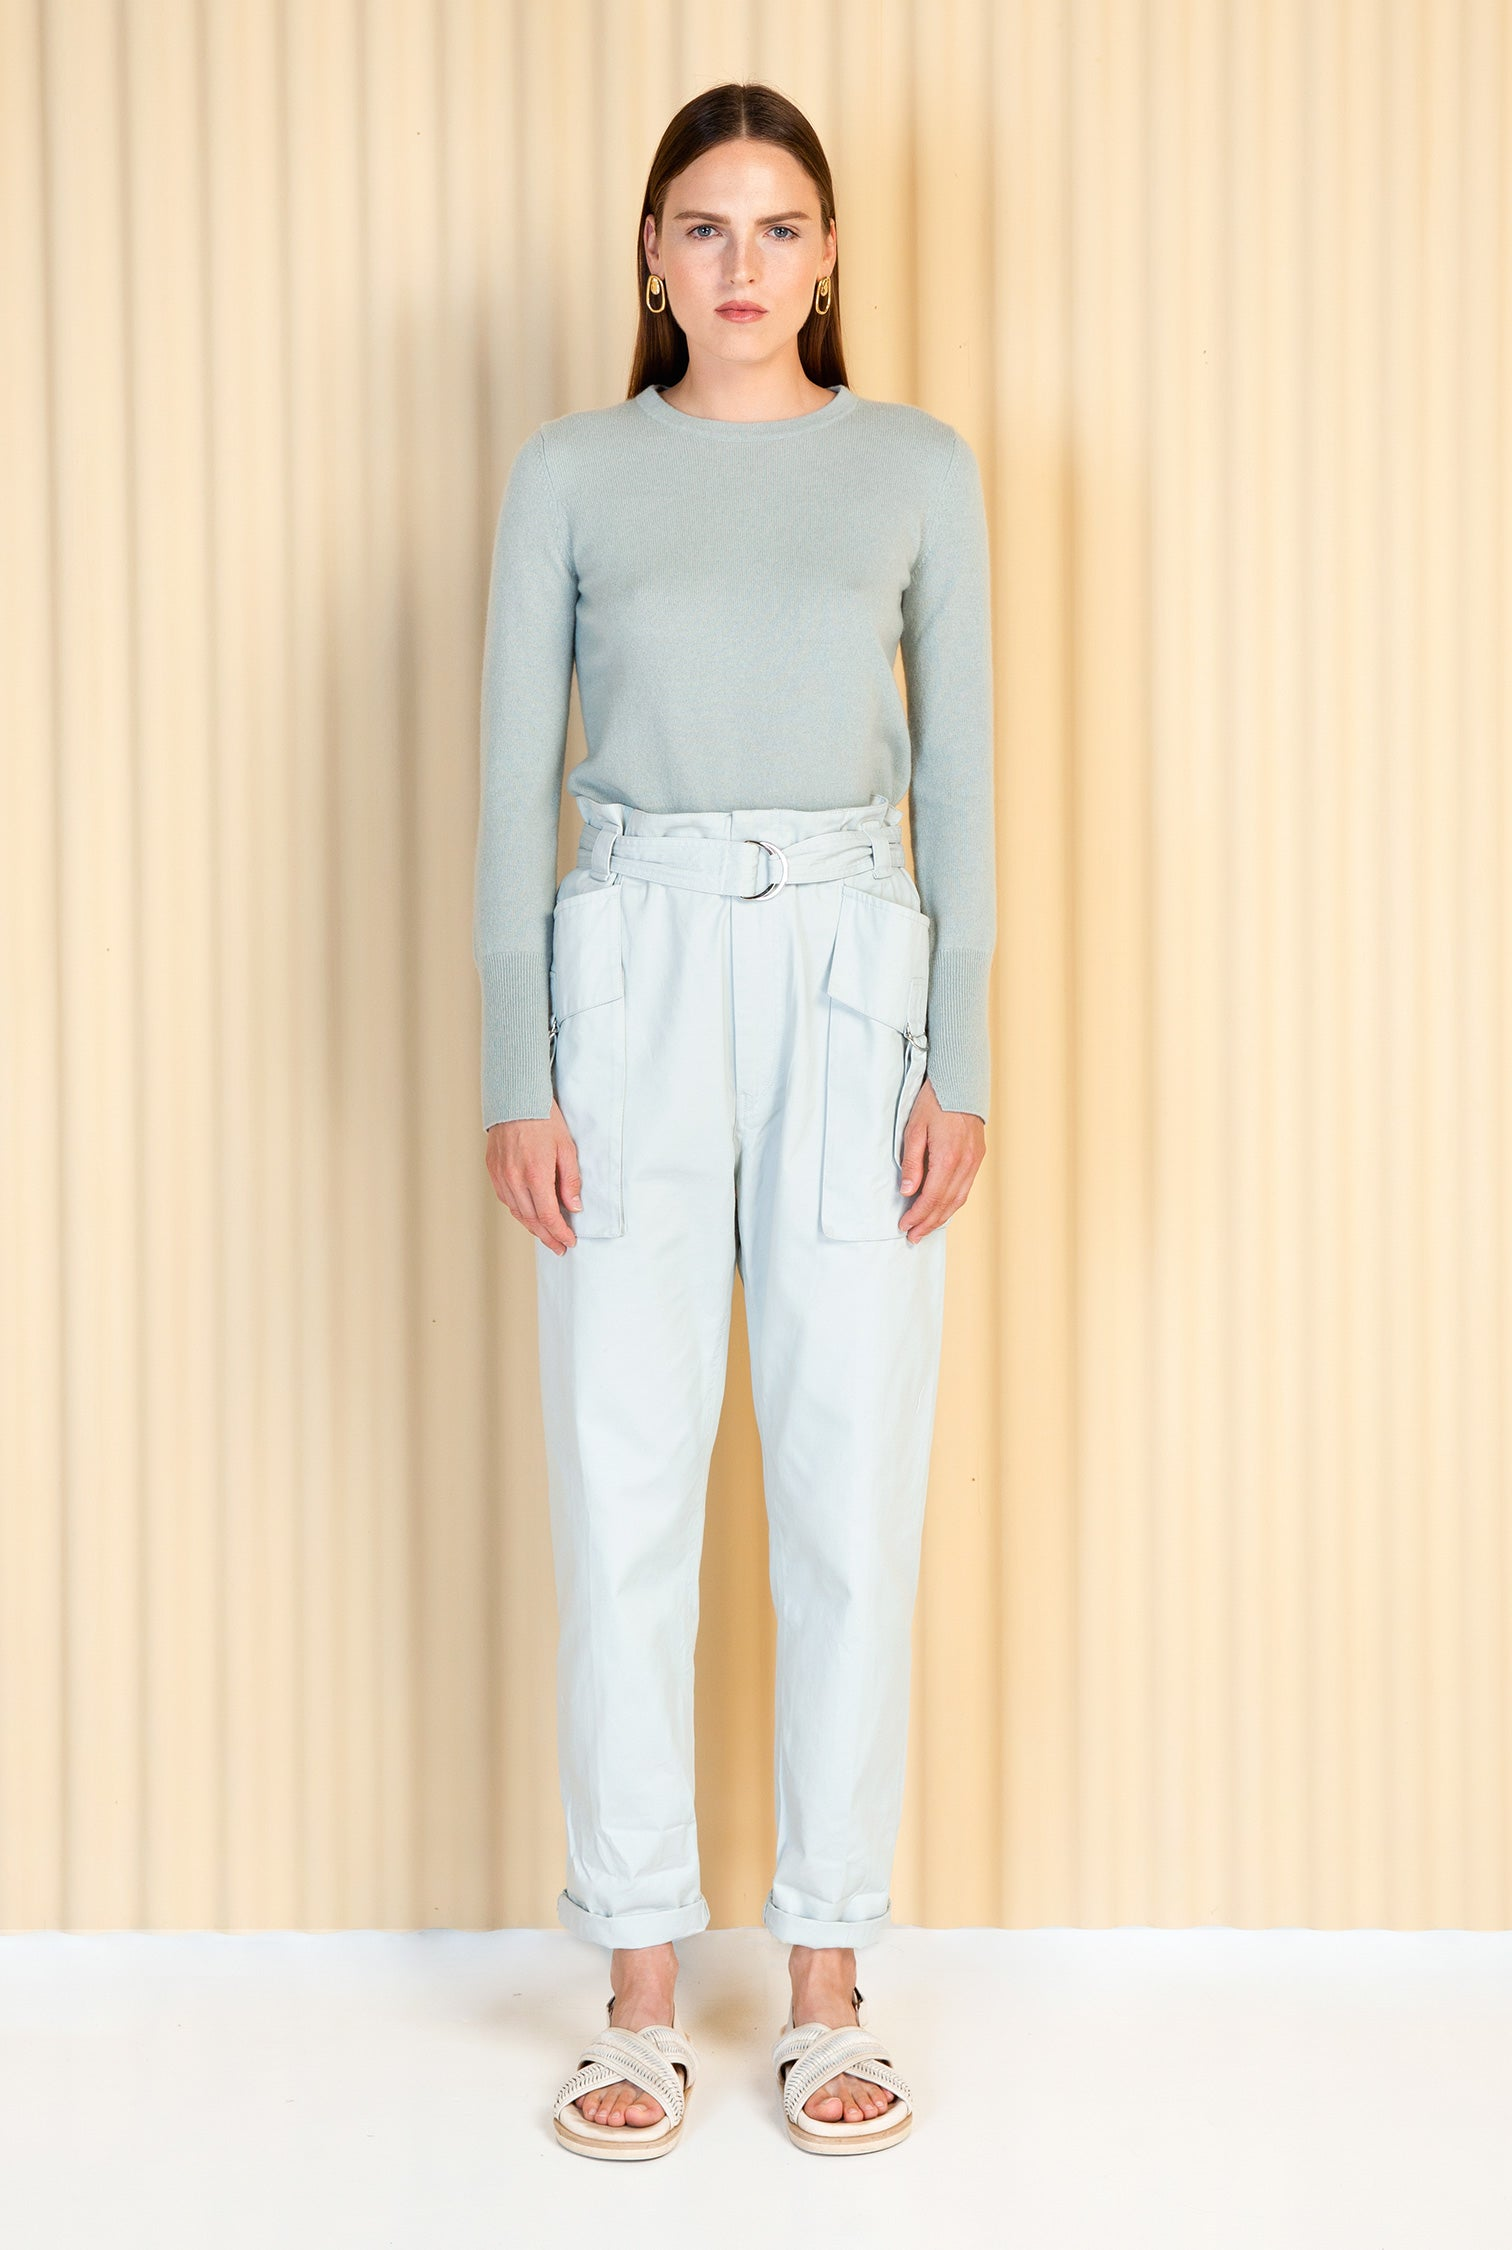 Magali Pascal | Naomi Pullover - Ice Blue